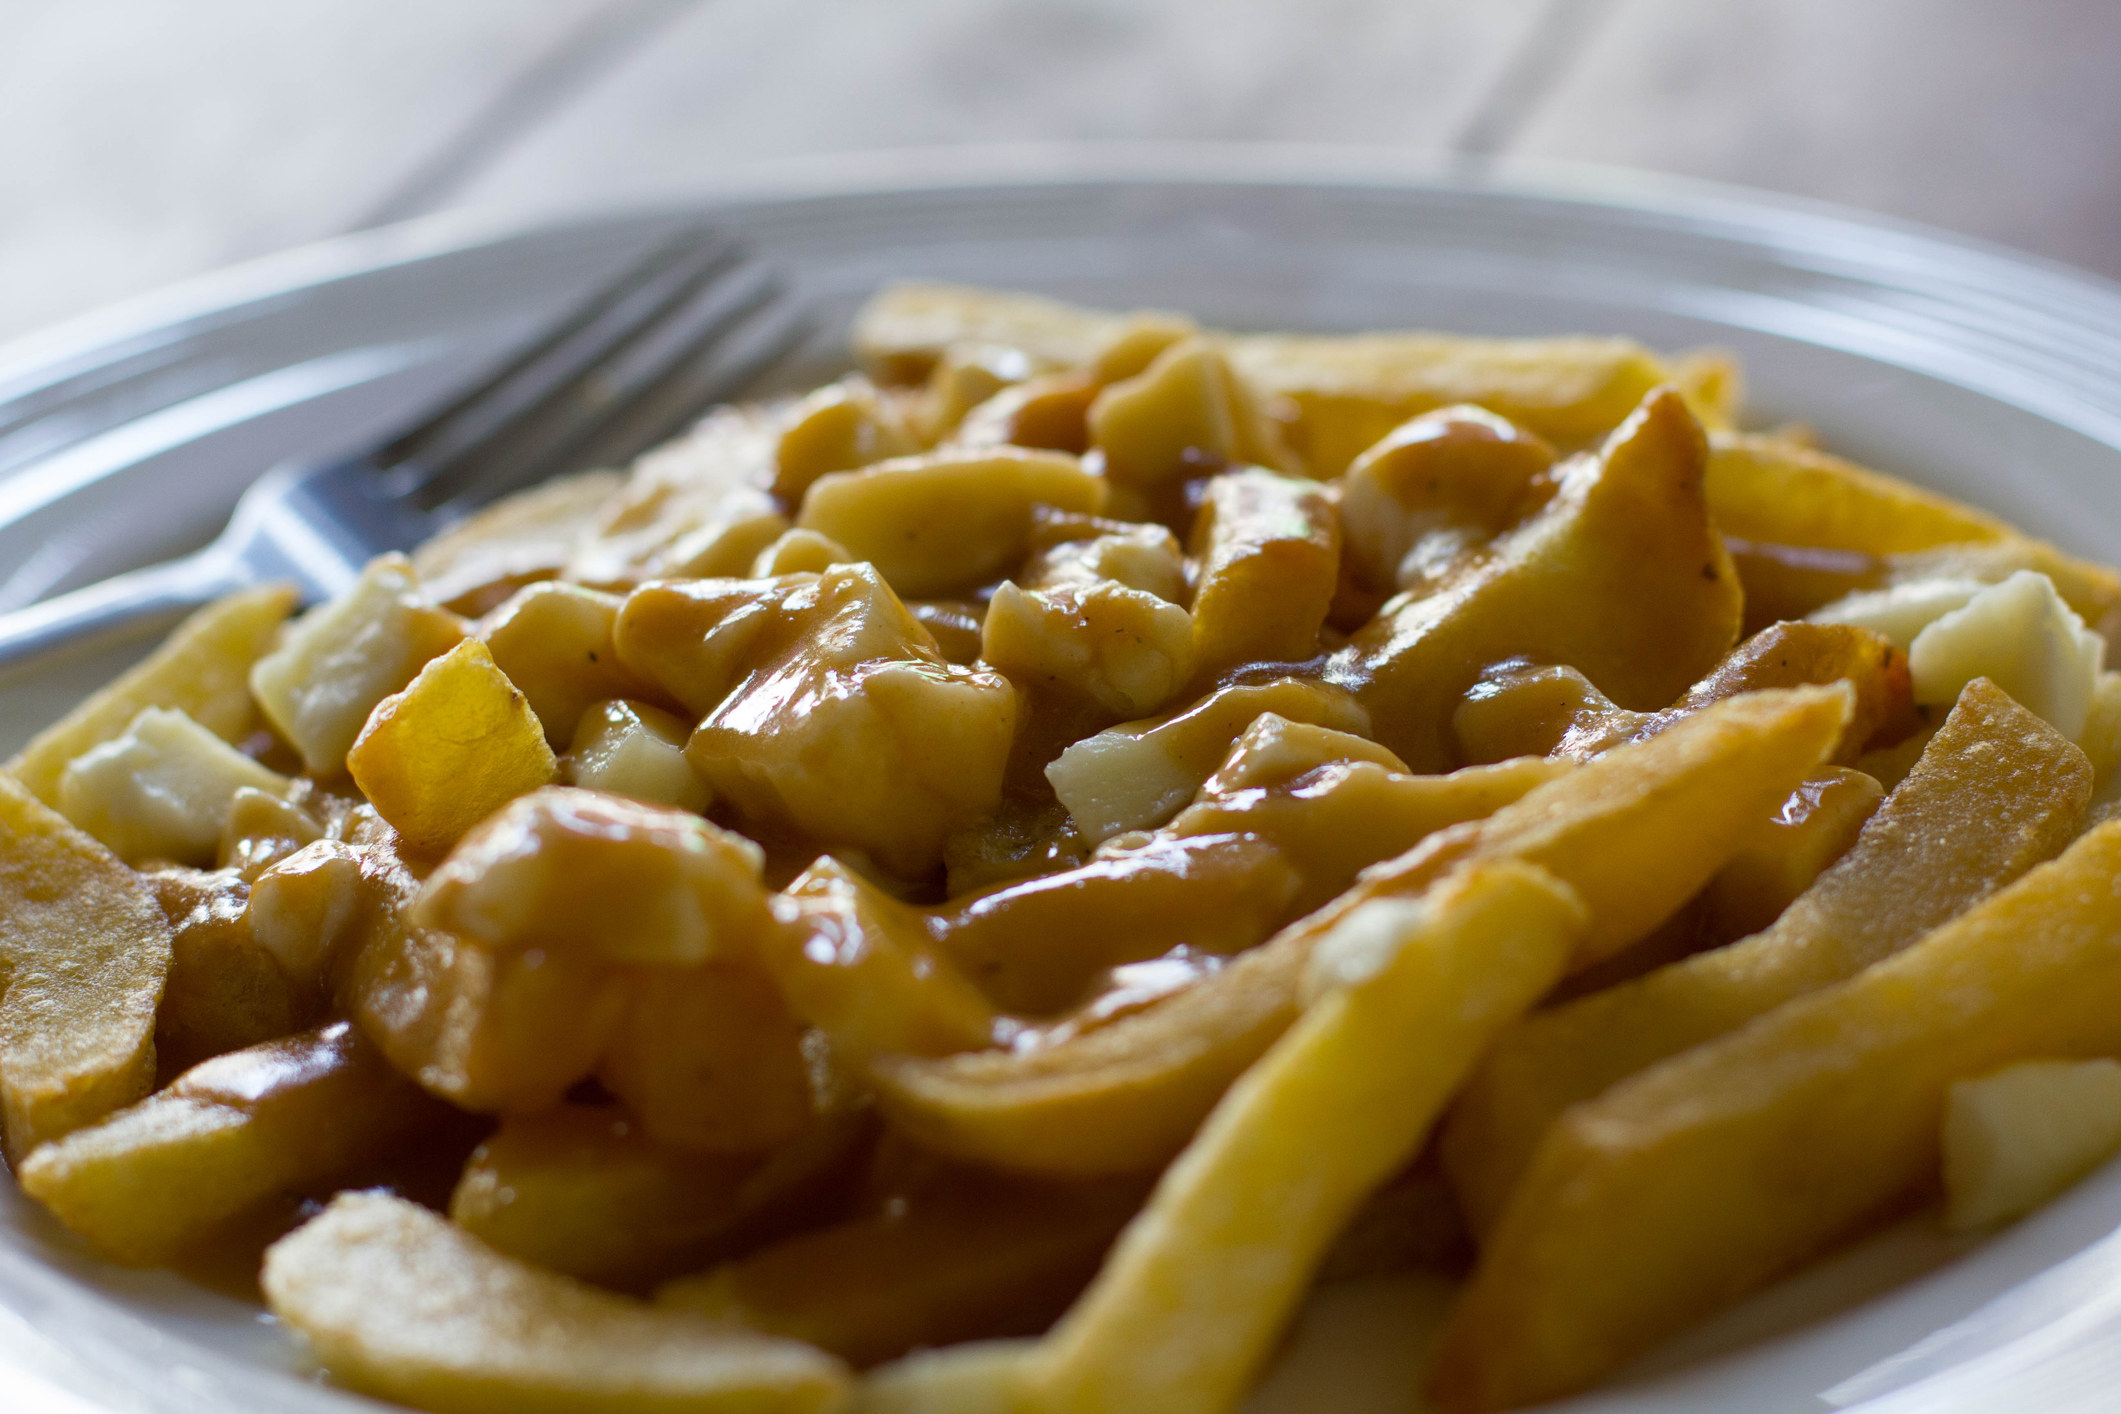 A plate of poutine with gravy and cheese curds.